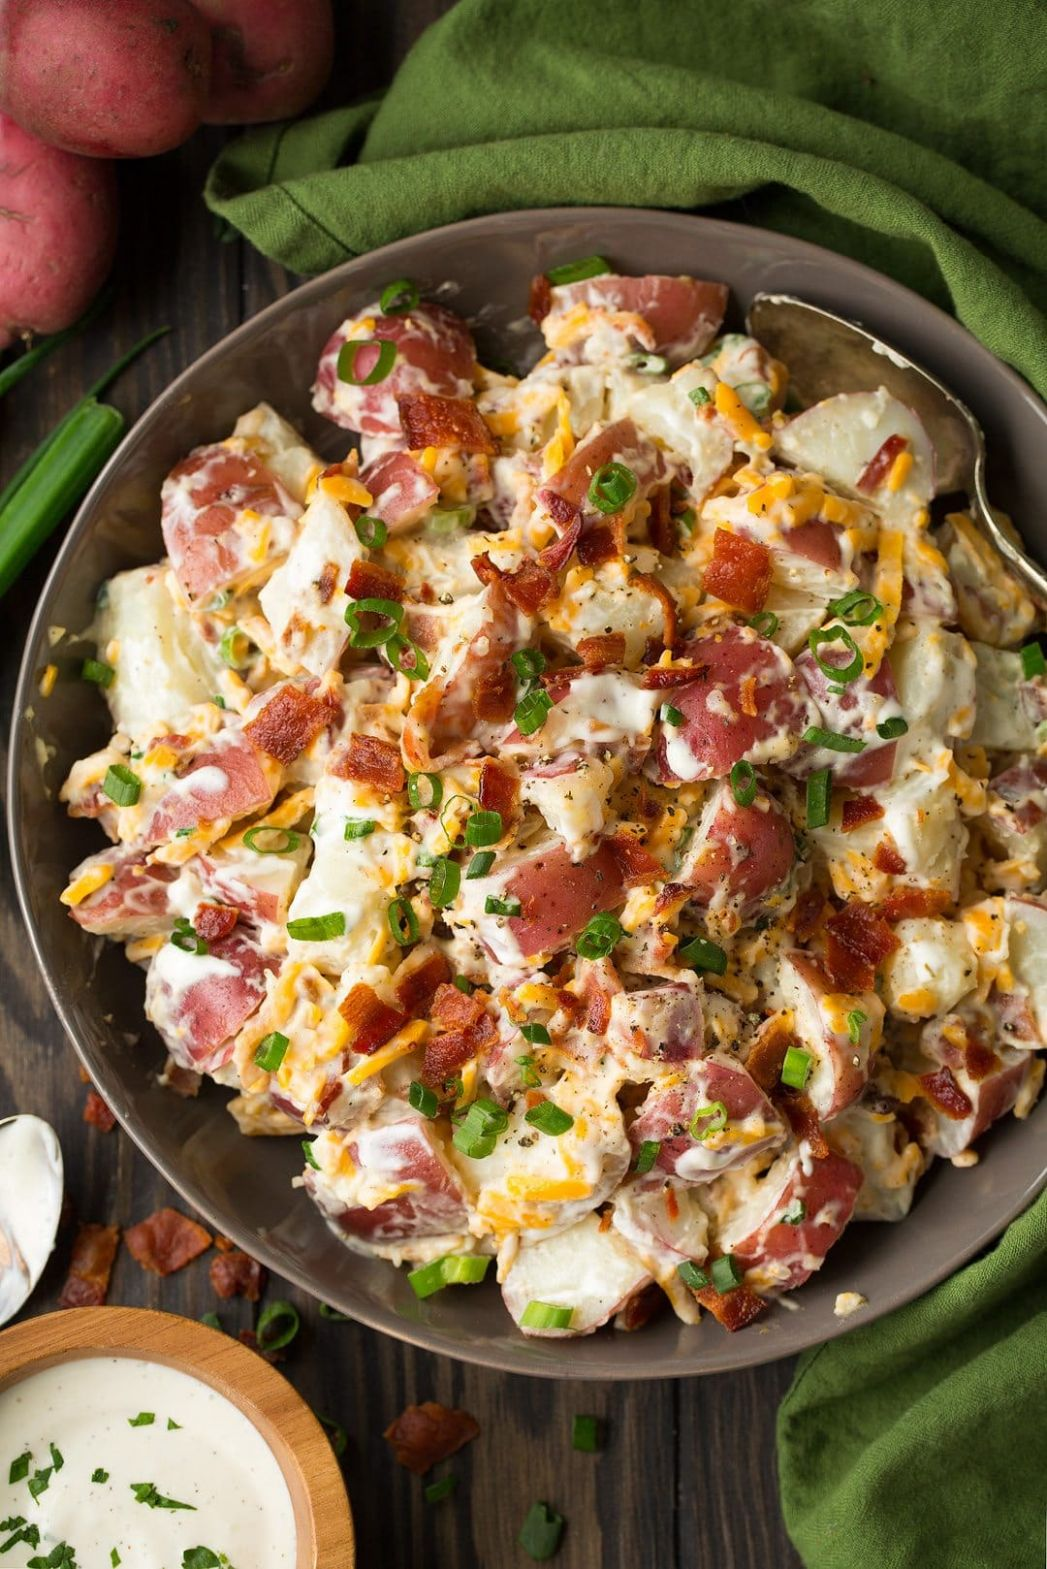 Cheddar Bacon Ranch Potato Salad - Recipes Potato Salad With Bacon